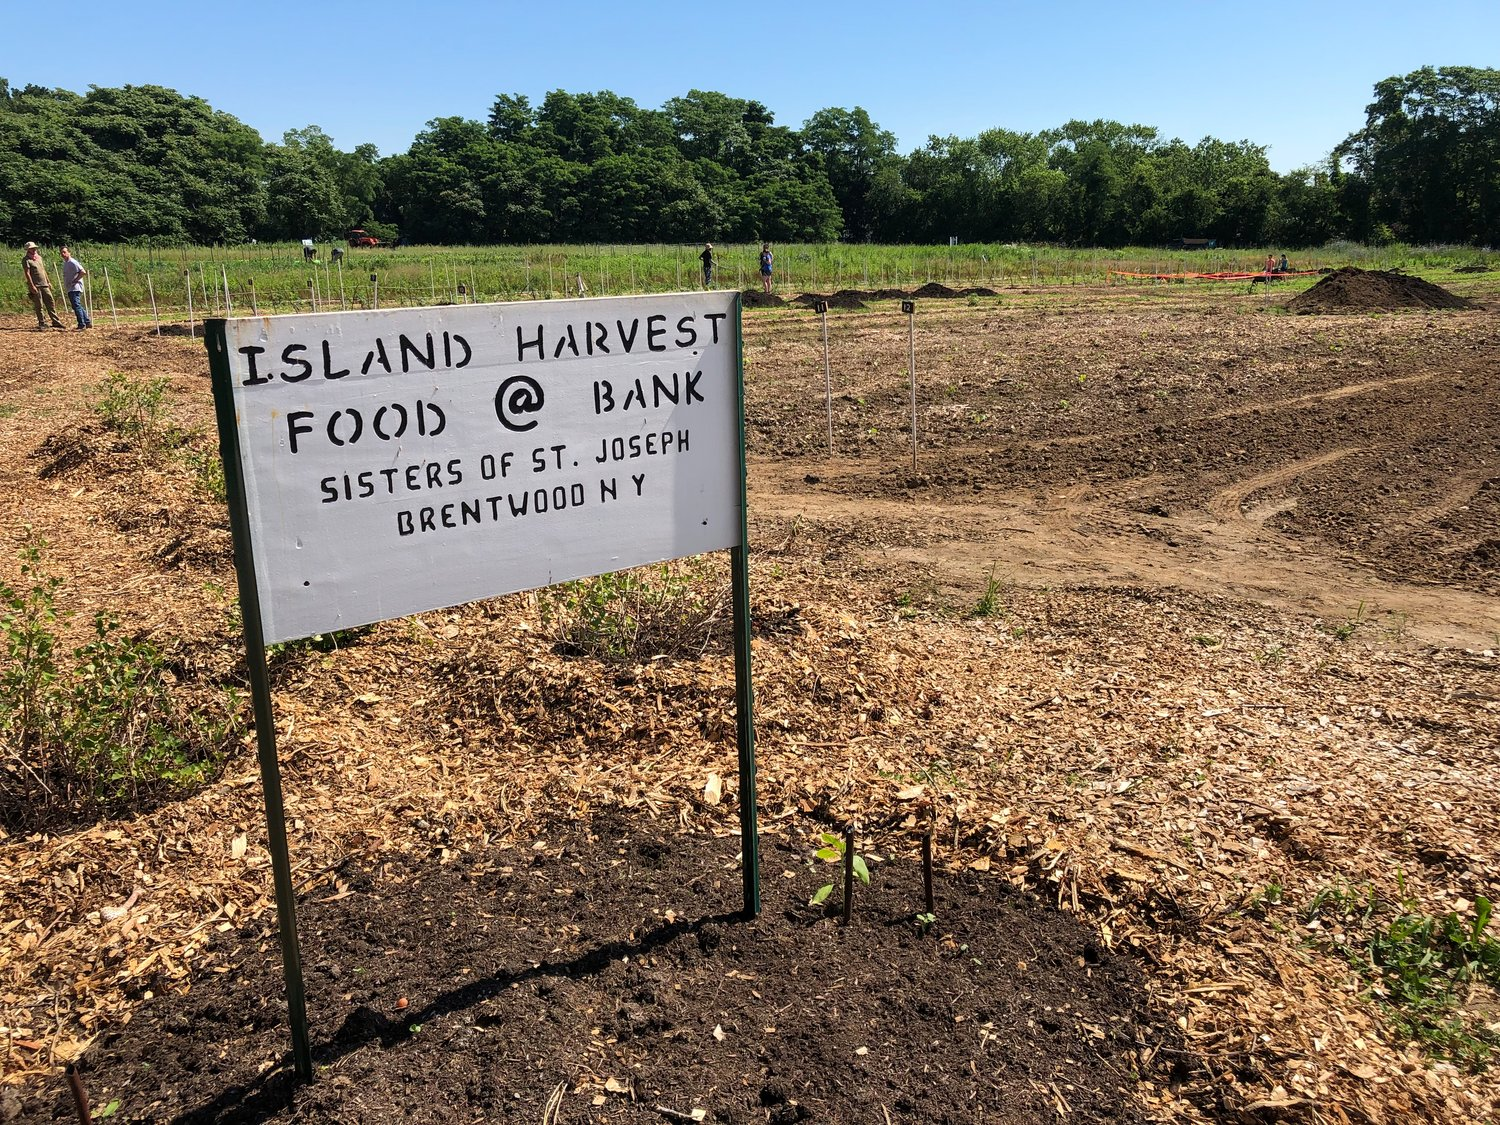 The Island Harvest farm grows an array of vegetables and helps produce between  6,000-8,000 pounds of farm-fresh produce per season.